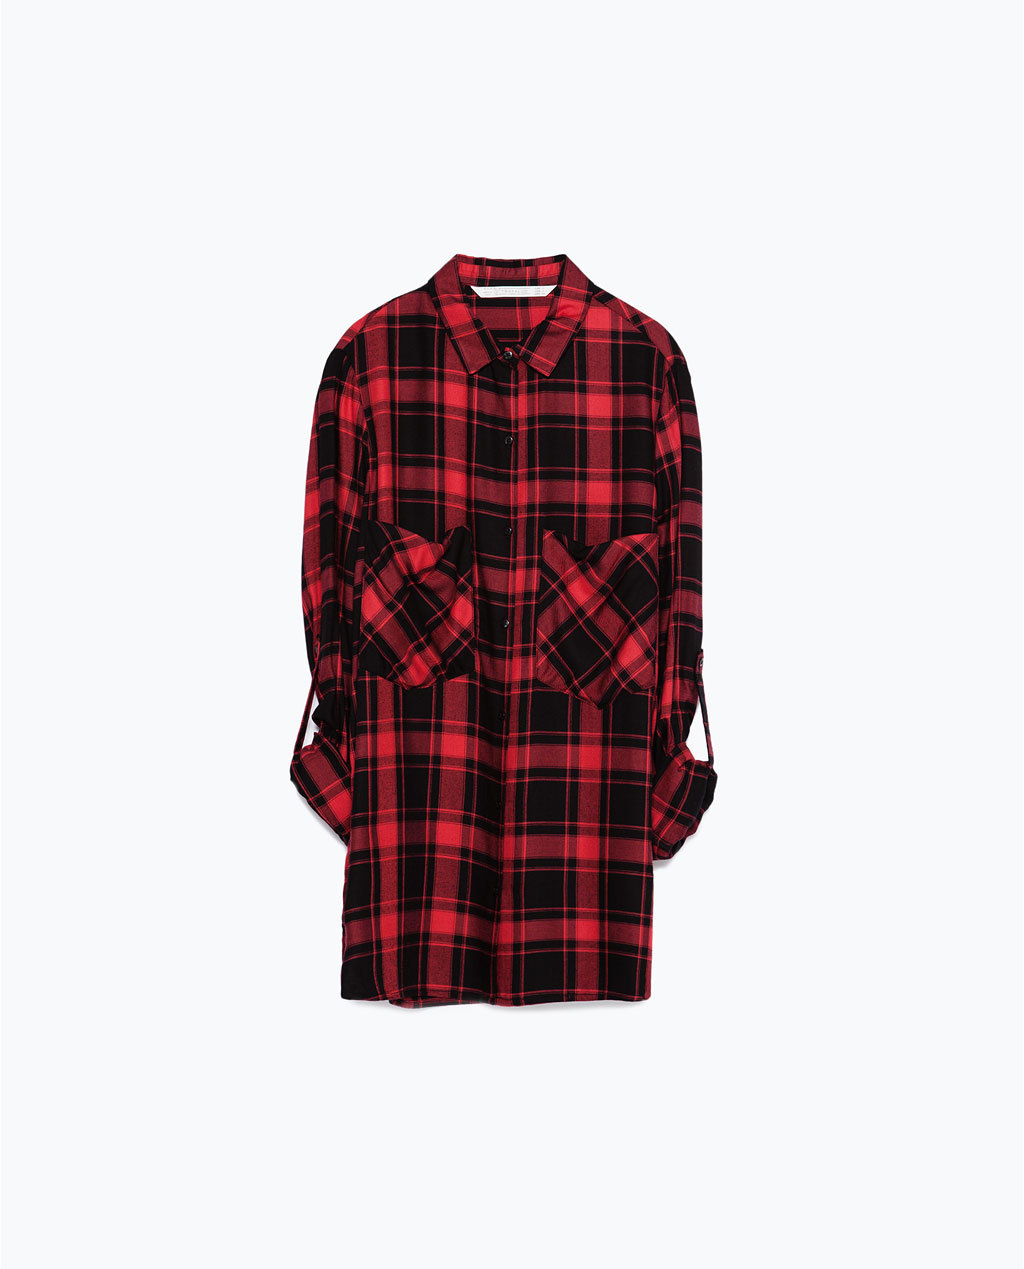 Check Shirt - neckline: shirt collar/peter pan/zip with opening; pattern: checked/gingham; style: shirt; predominant colour: true red; secondary colour: black; occasions: casual, creative work; fibres: viscose/rayon - 100%; fit: loose; length: mid thigh; sleeve length: long sleeve; sleeve style: standard; texture group: cotton feel fabrics; pattern type: fabric; multicoloured: multicoloured; season: a/w 2015; trends: plaid and simple